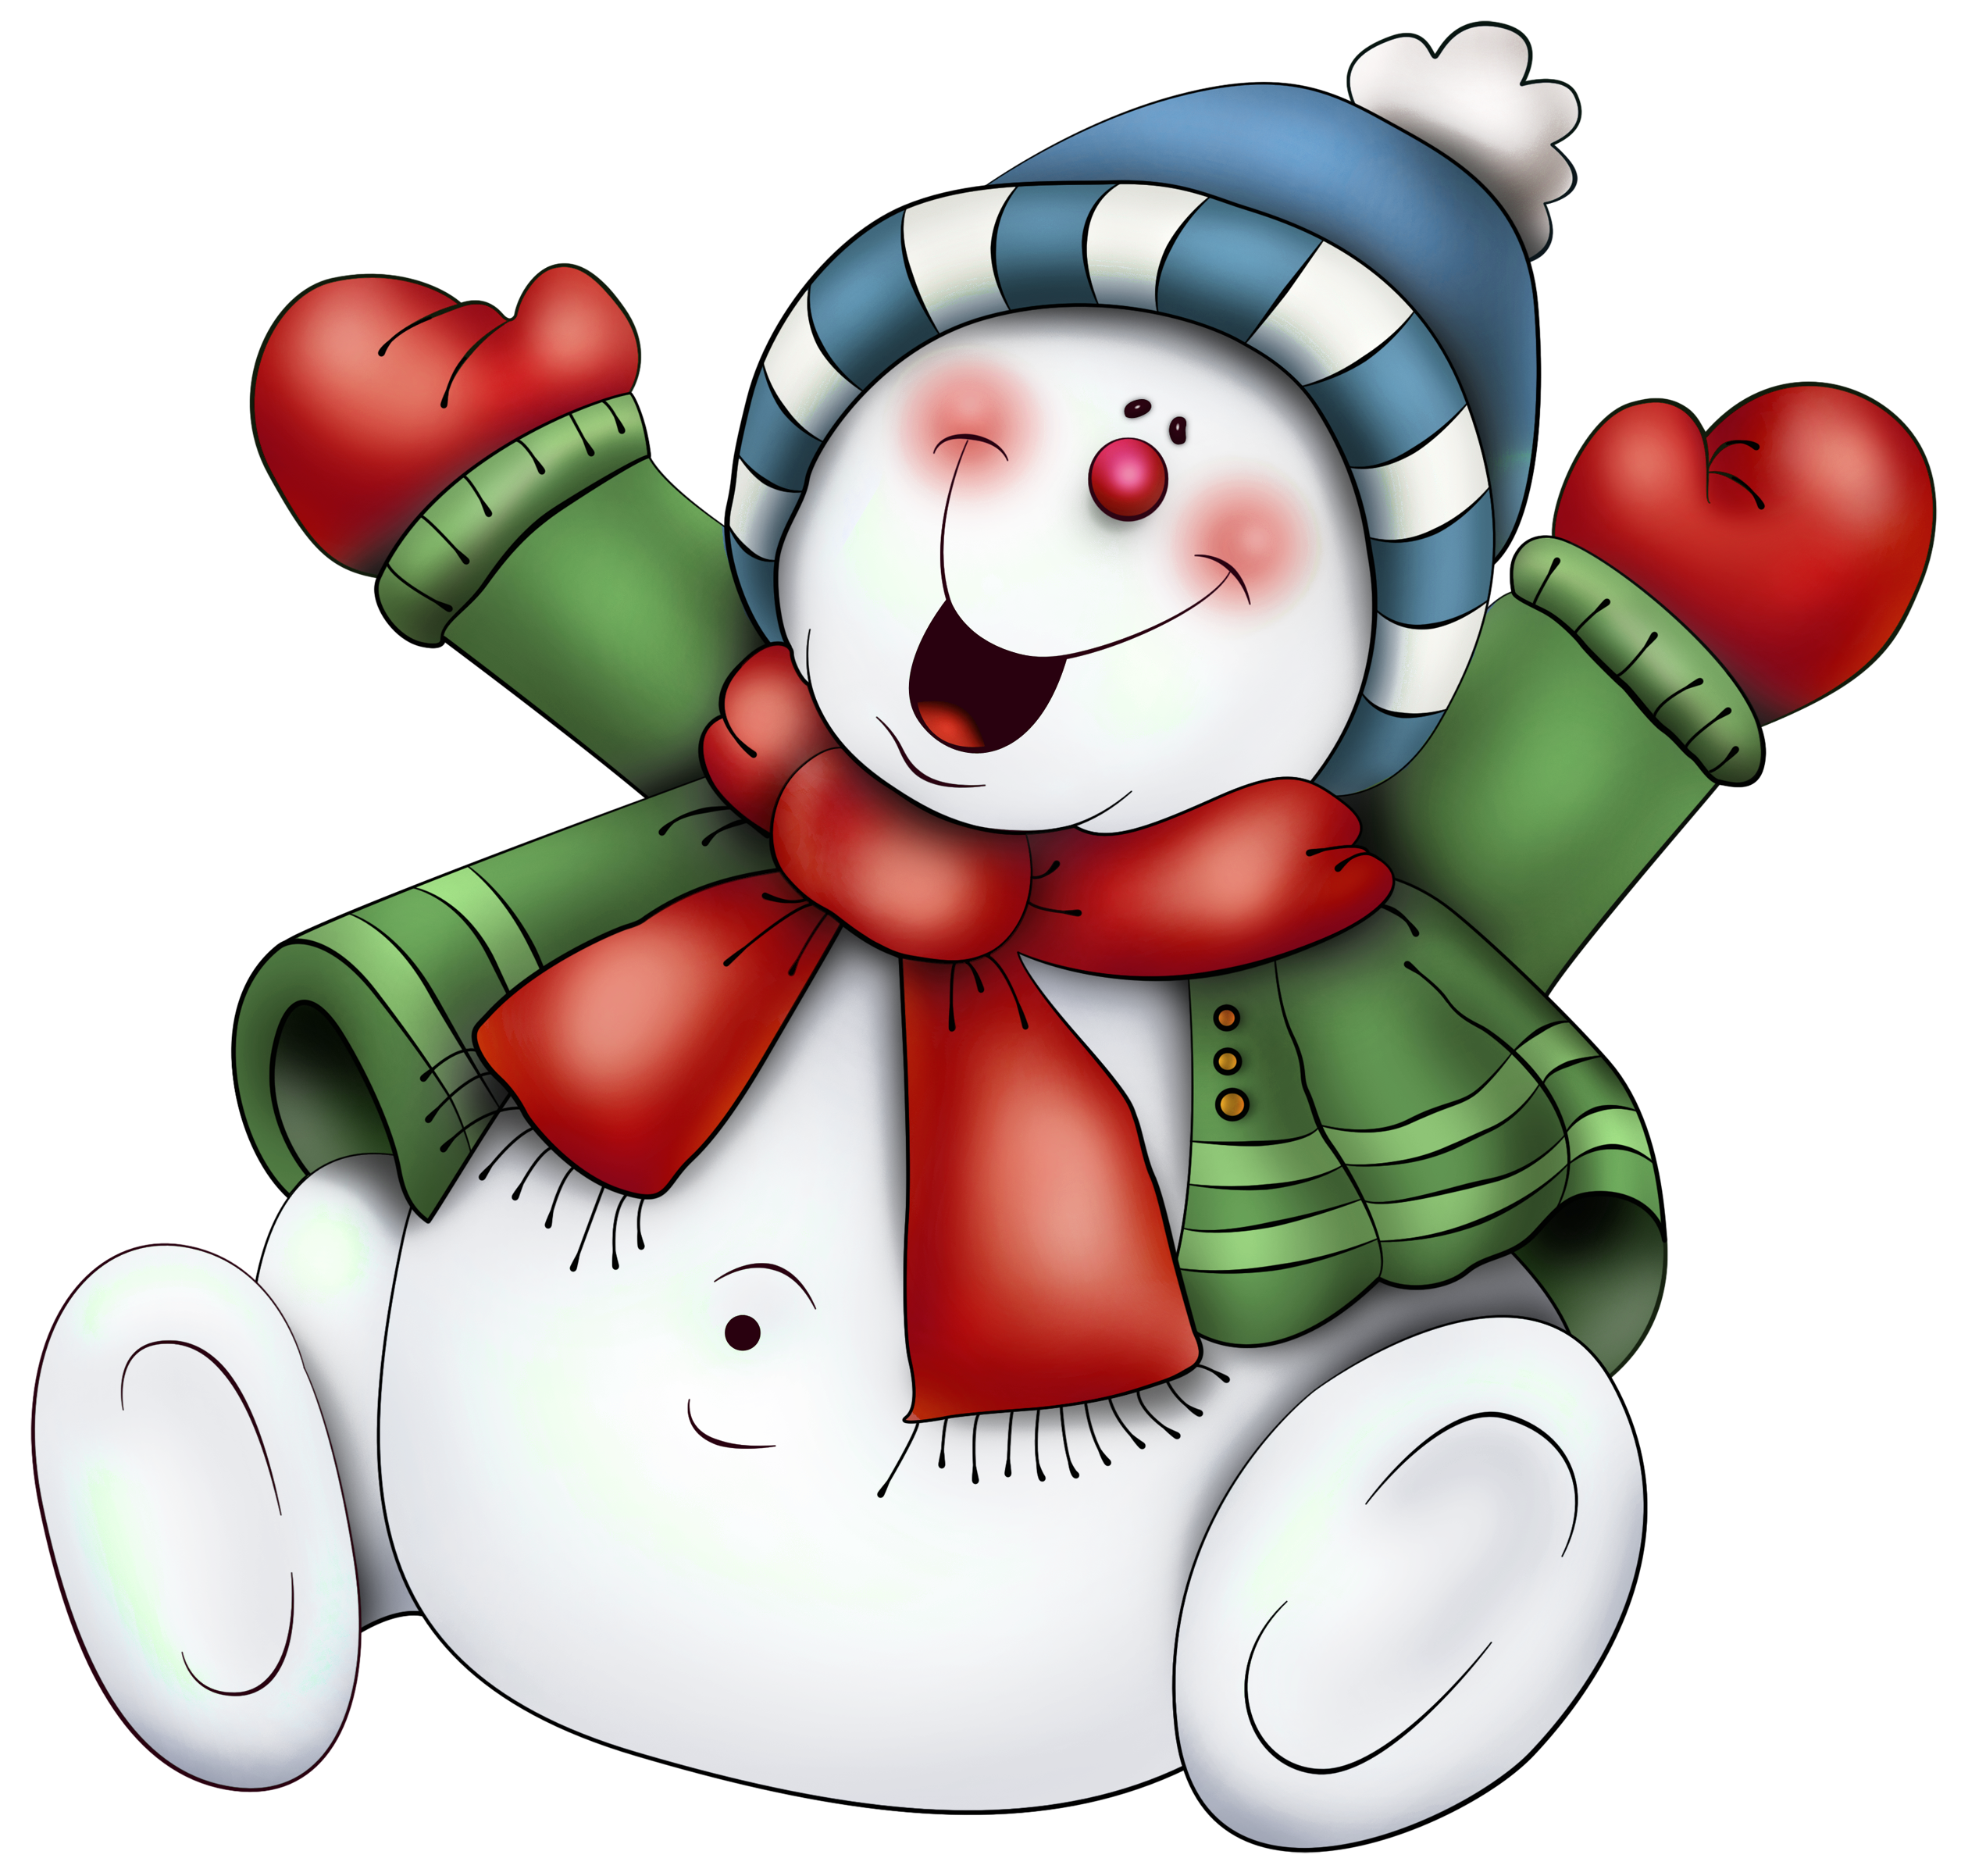 Snowflake with snowman face clipart clip art royalty free Snowman with Scarf PNG Clipart (use on transparencies inside clear ... clip art royalty free